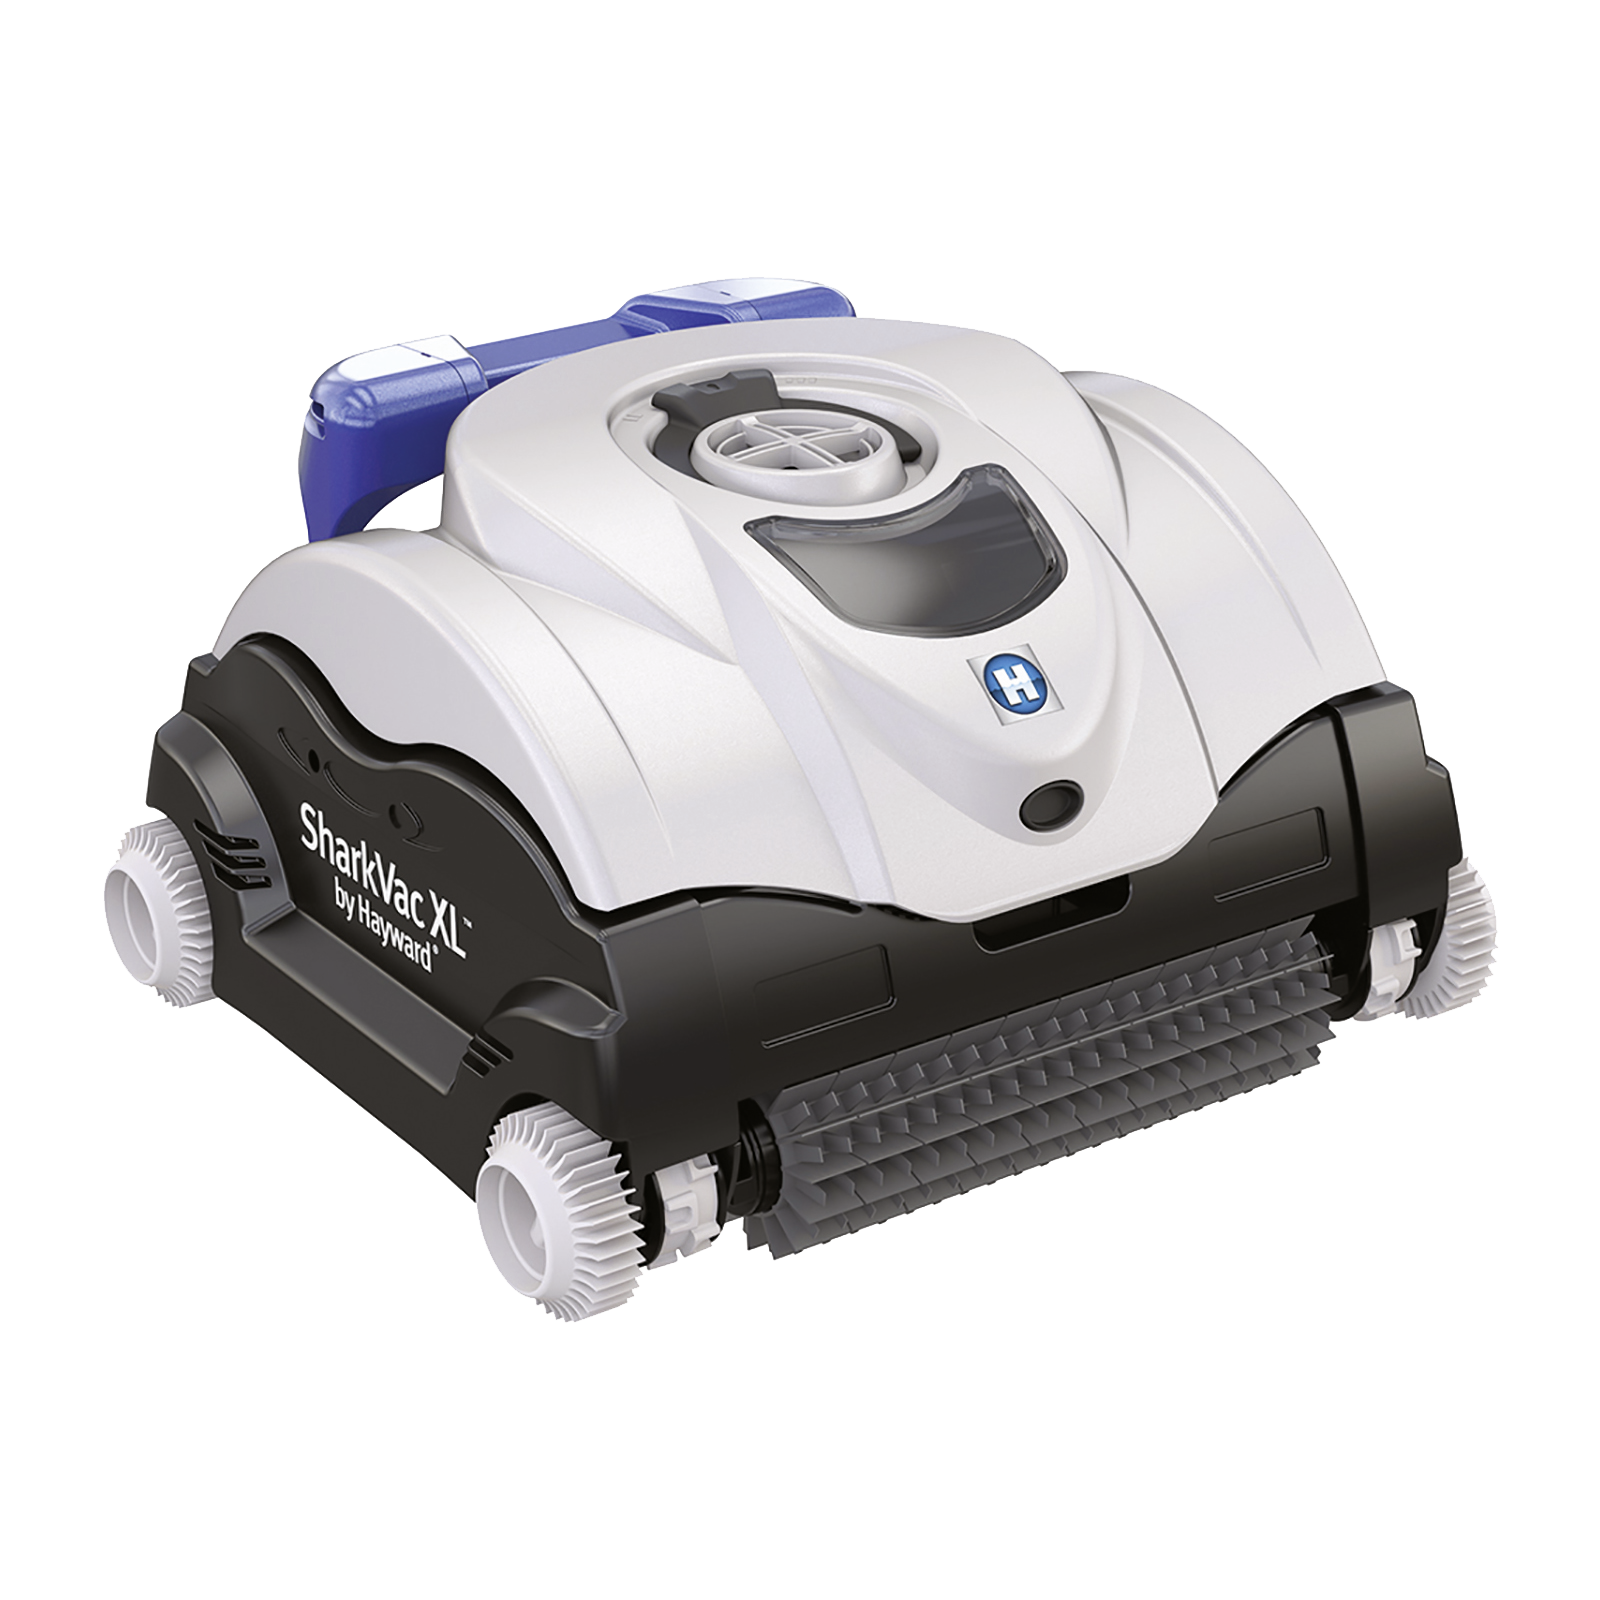 SharkVAC XL™ Pilot Cleaner